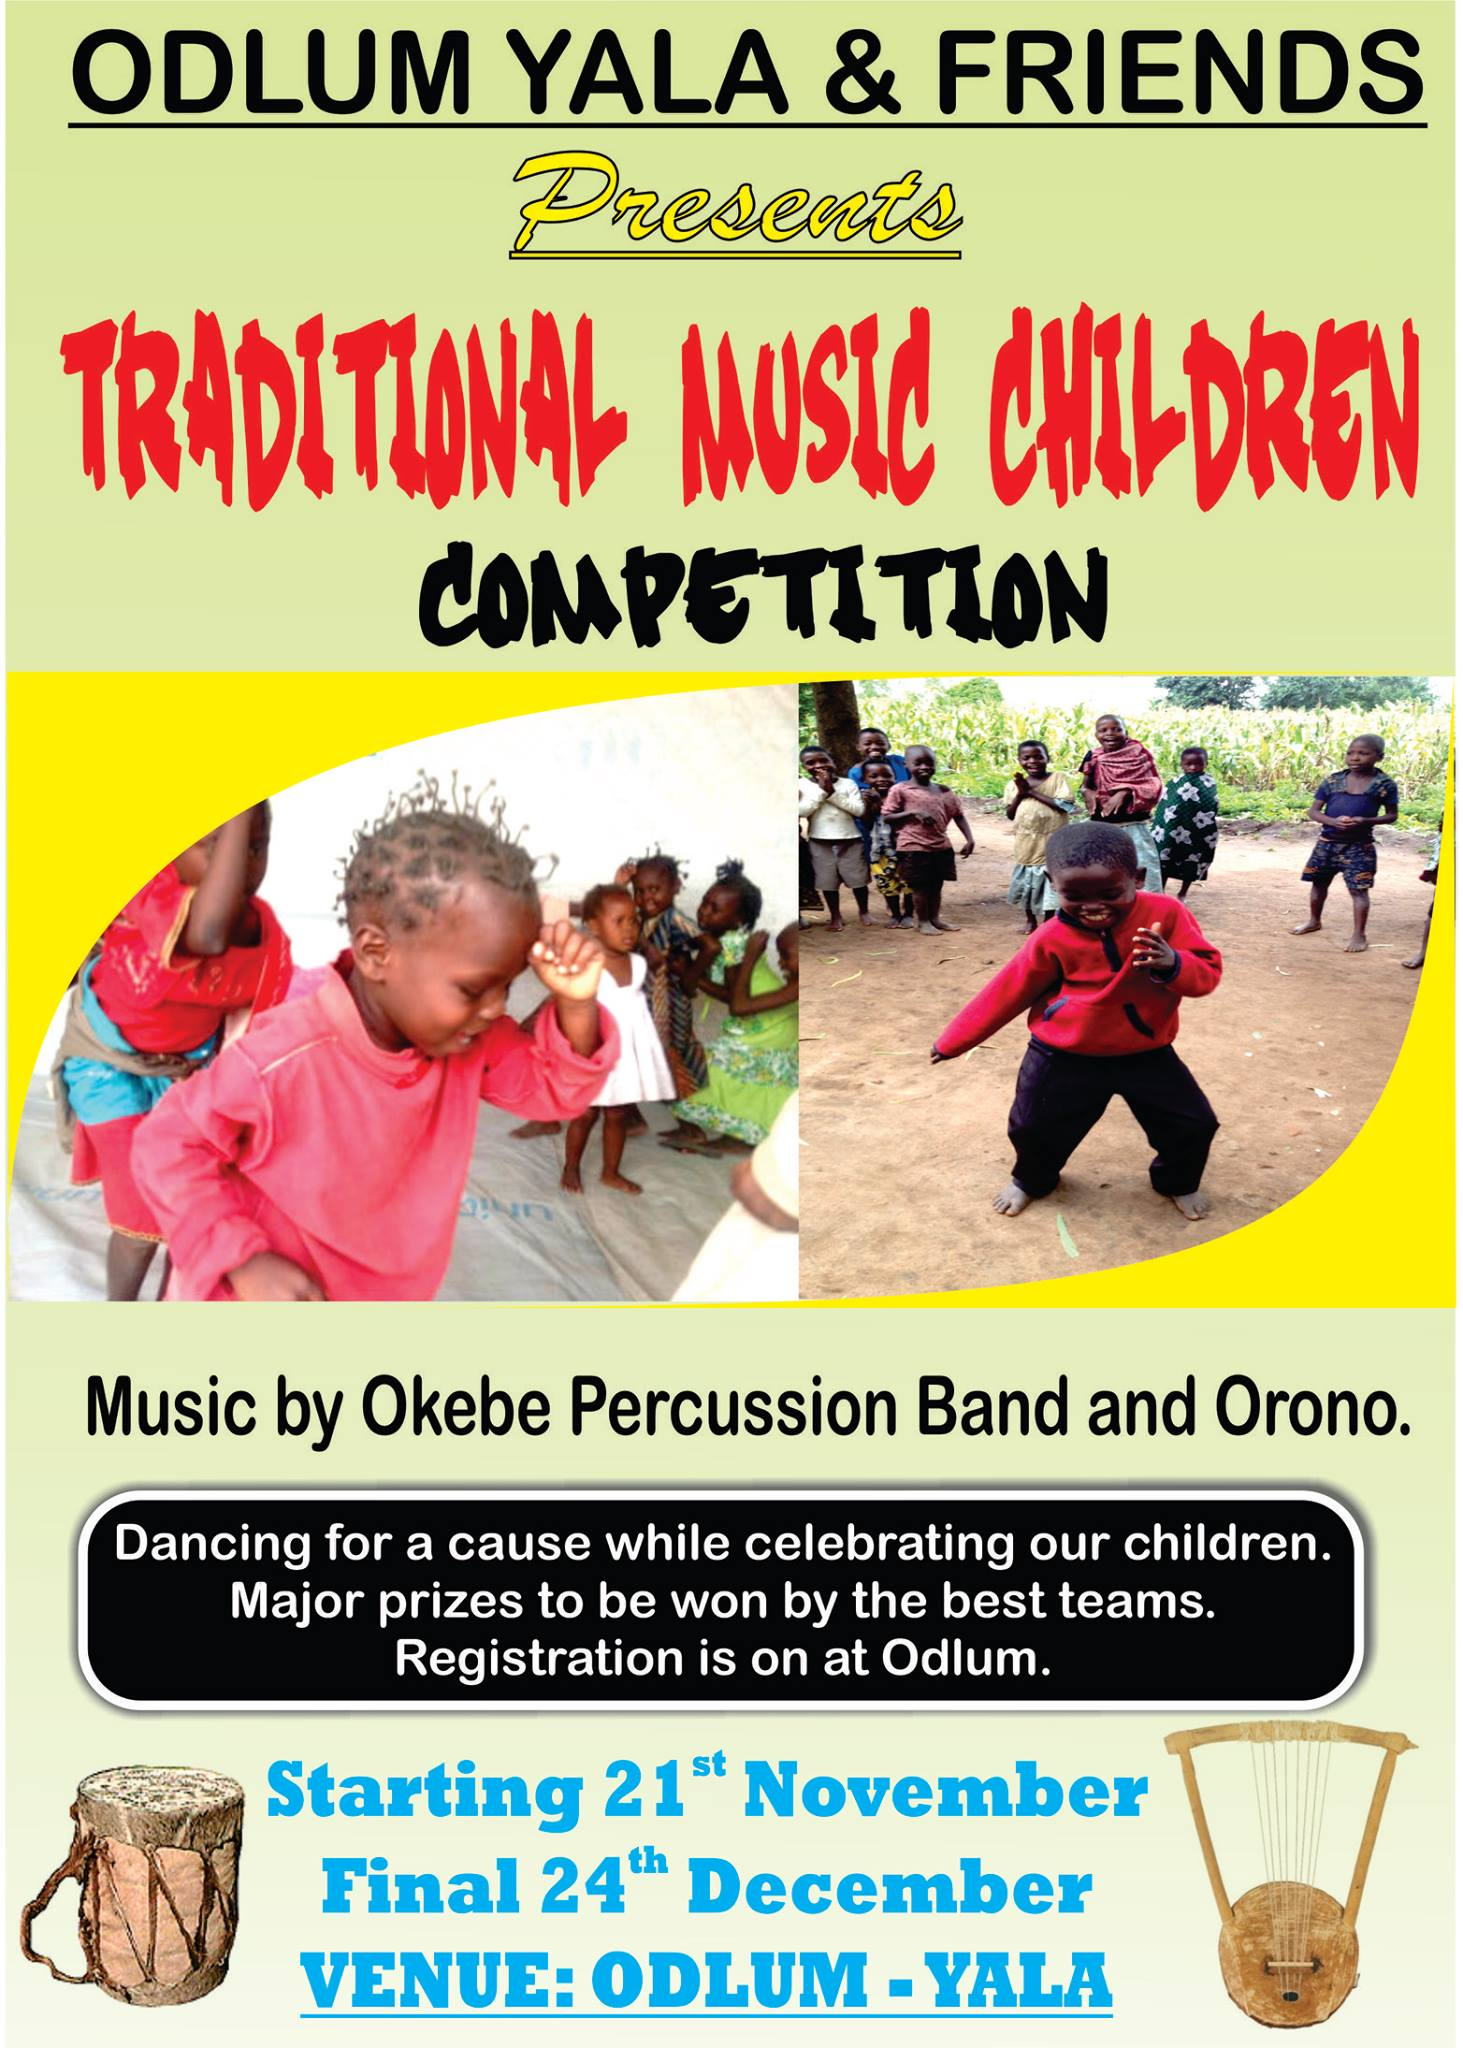 Flyer for Odlum-Yala Traditional Music Children Festival